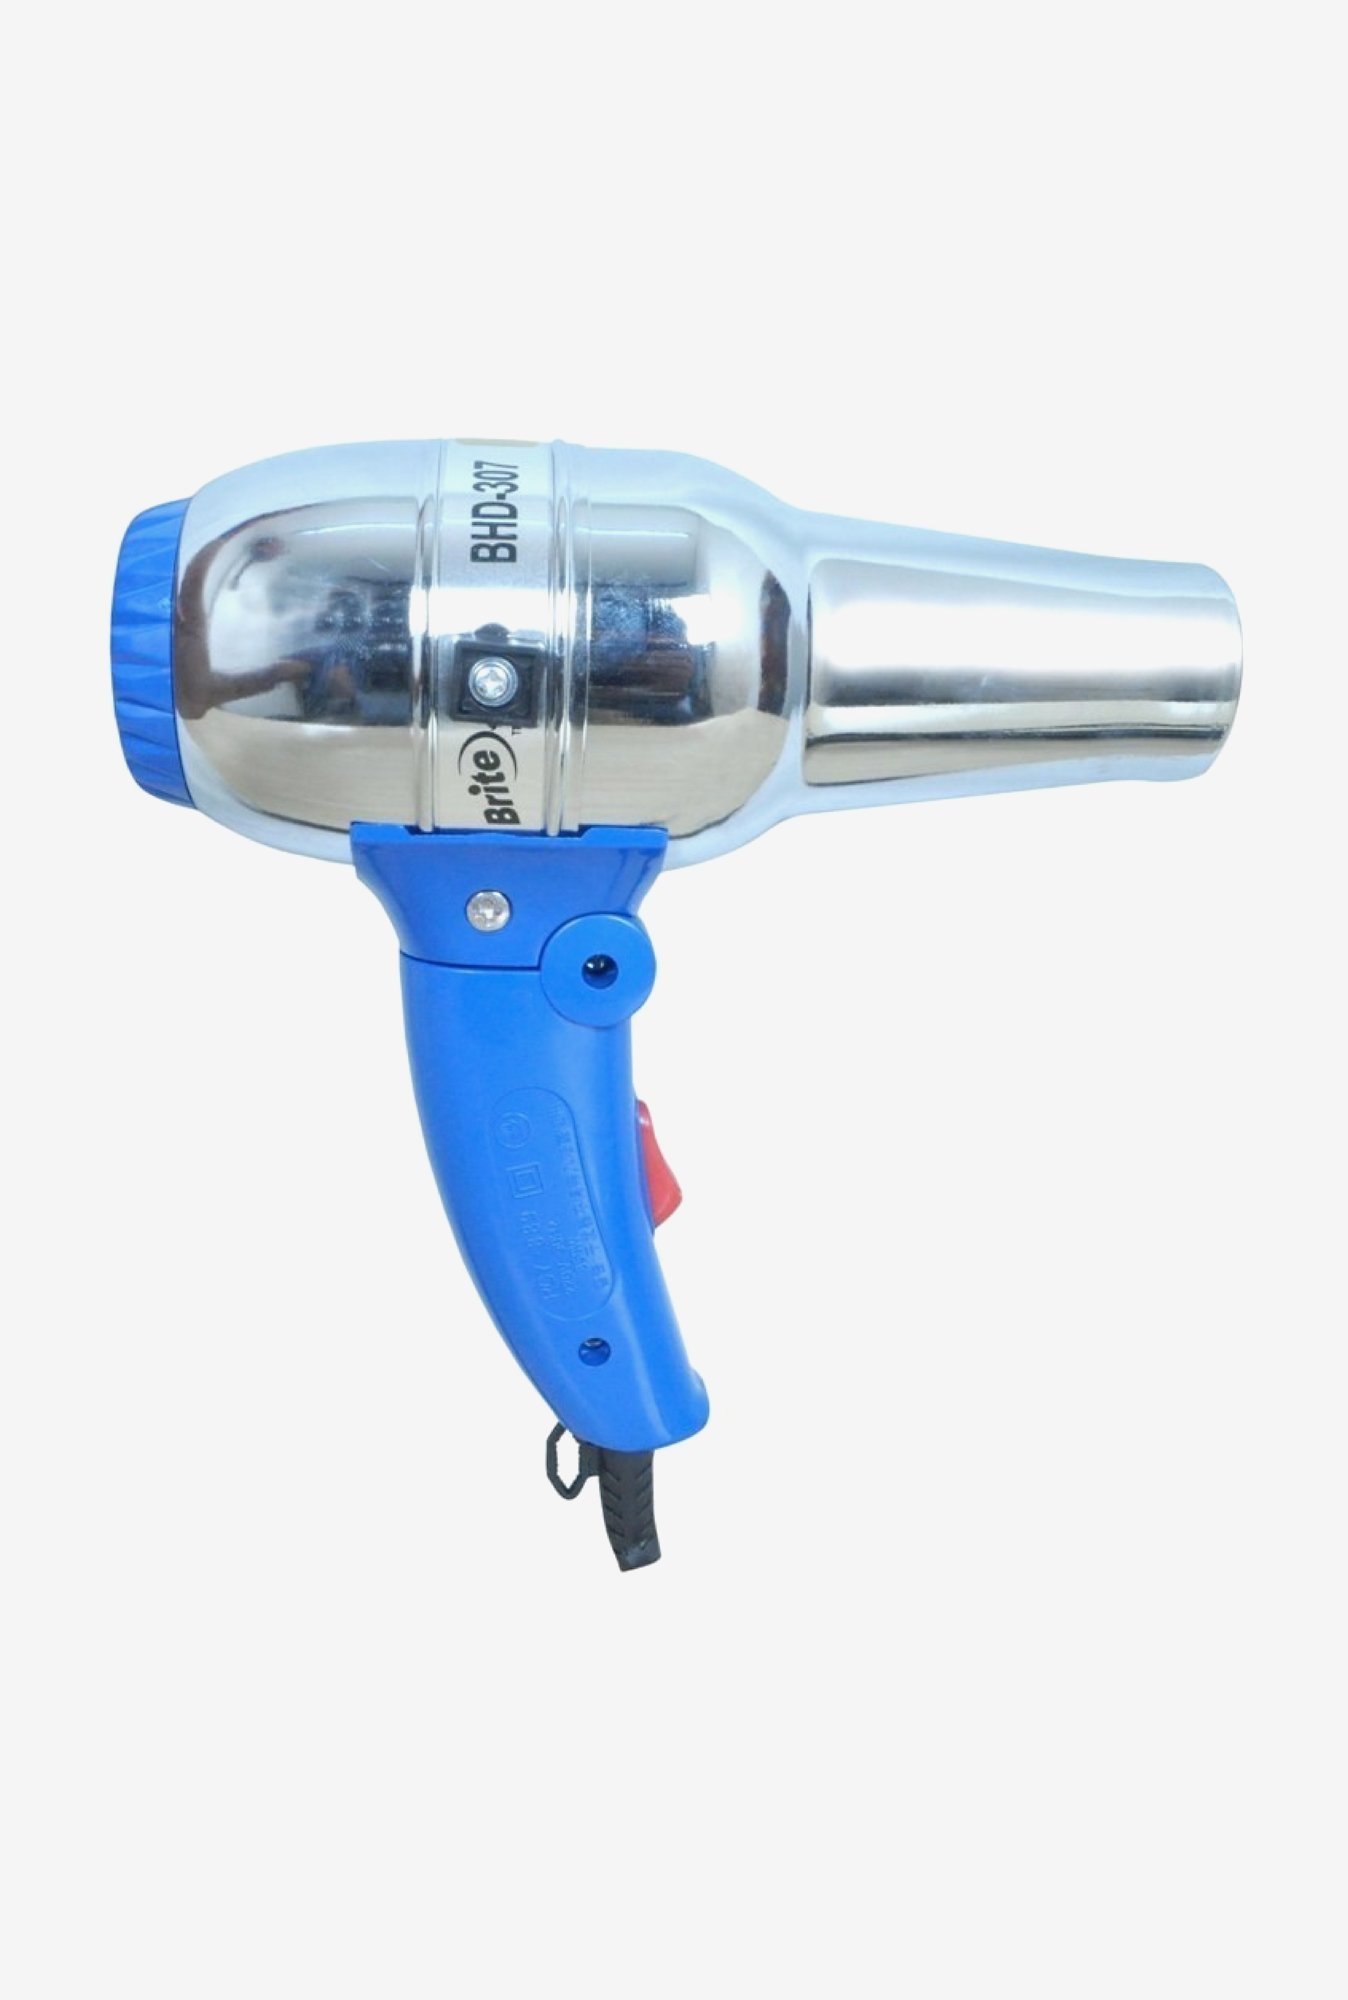 Brite BHD-307 Cool Shot Hair Dryer 1300 W (Blue)